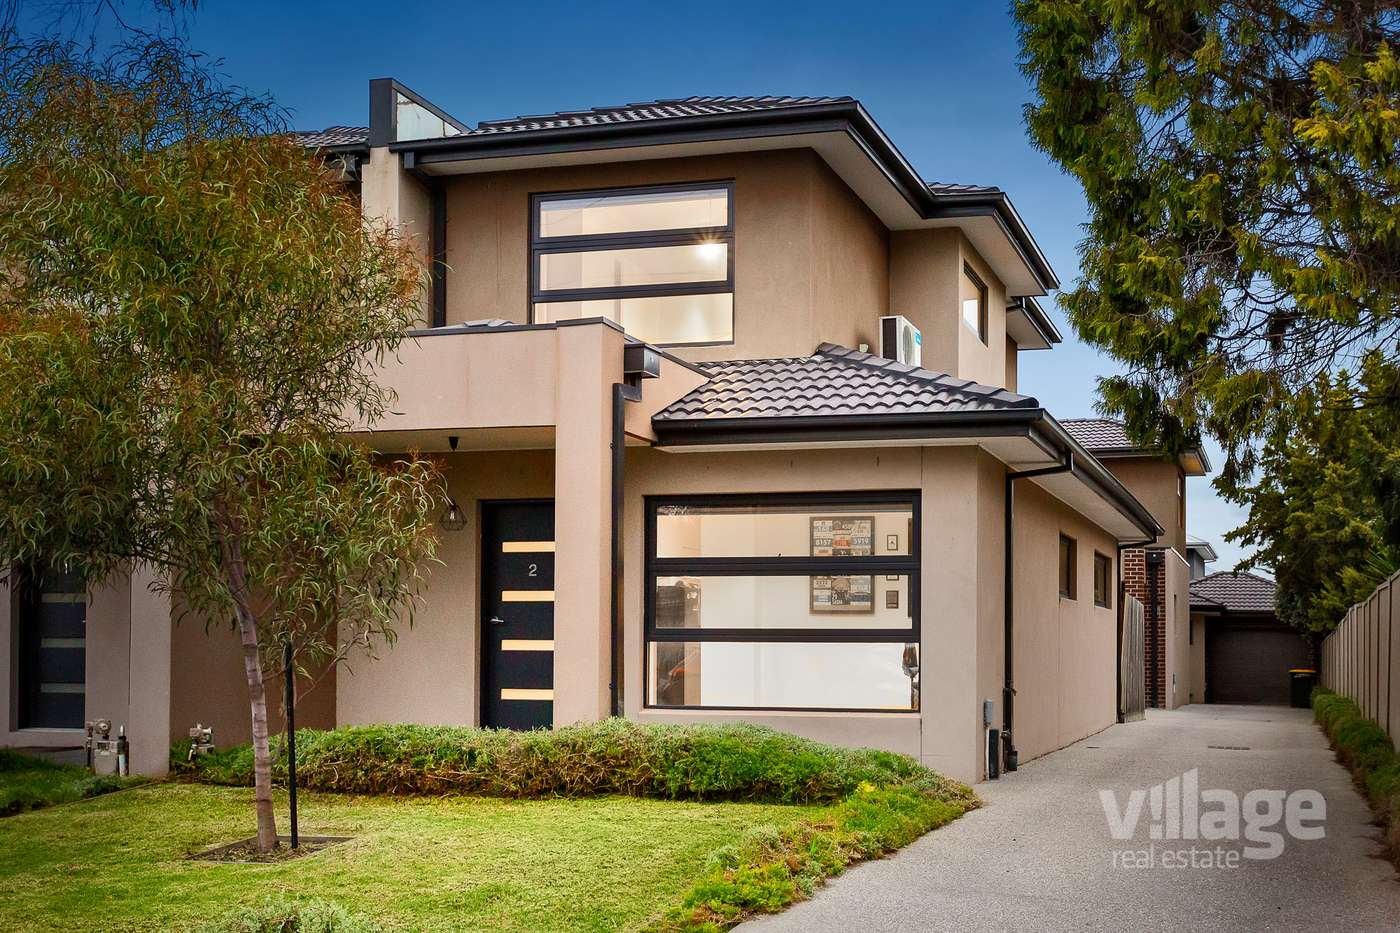 Main view of Homely townhouse listing, 2/229 Woods Street, Newport, VIC 3015